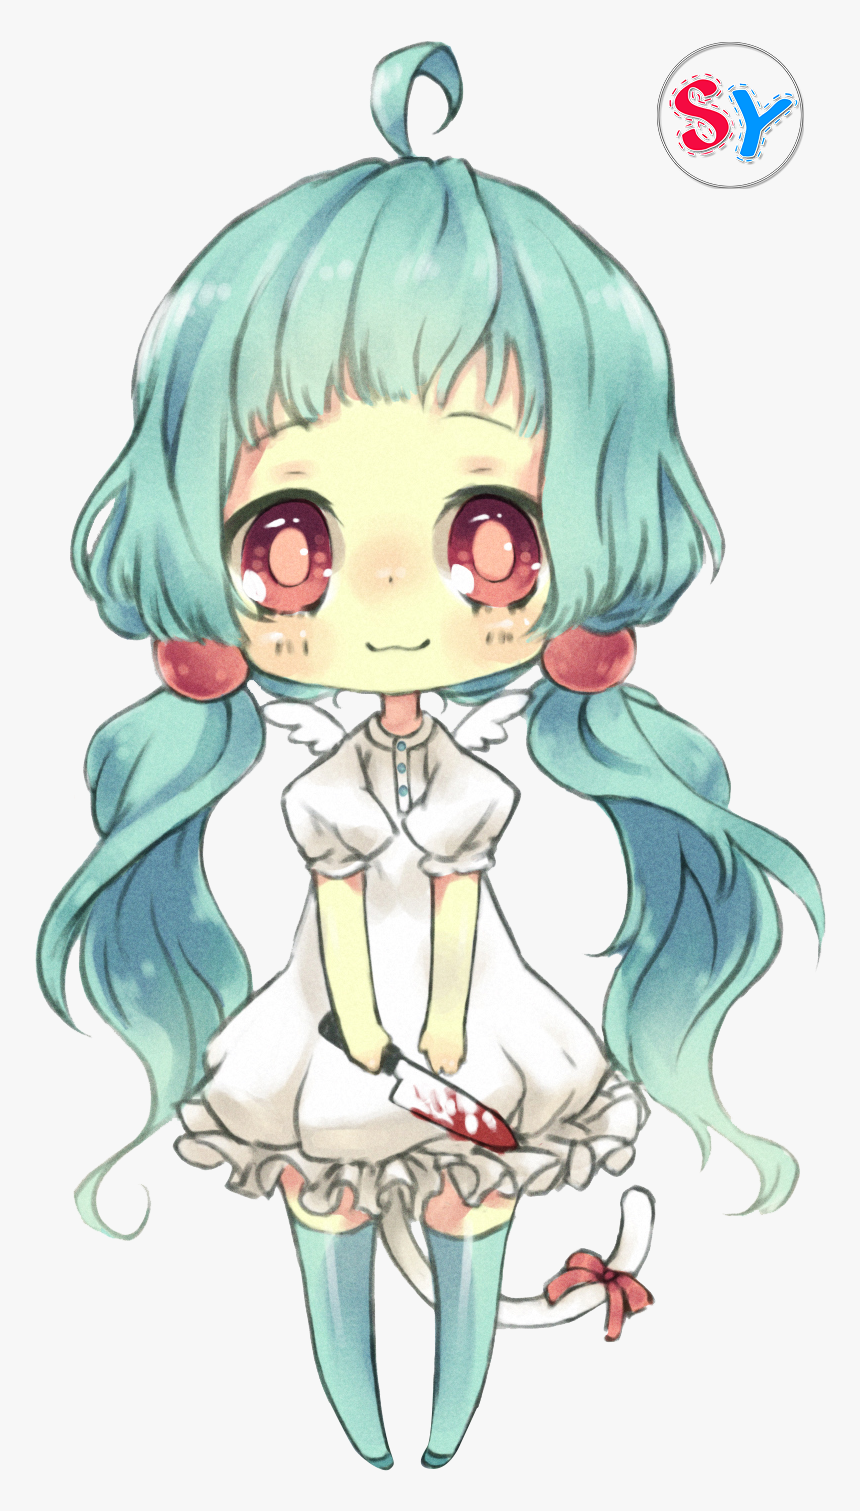 Anime Chibi Girl With Blue Hair, HD Png Download, Free Download